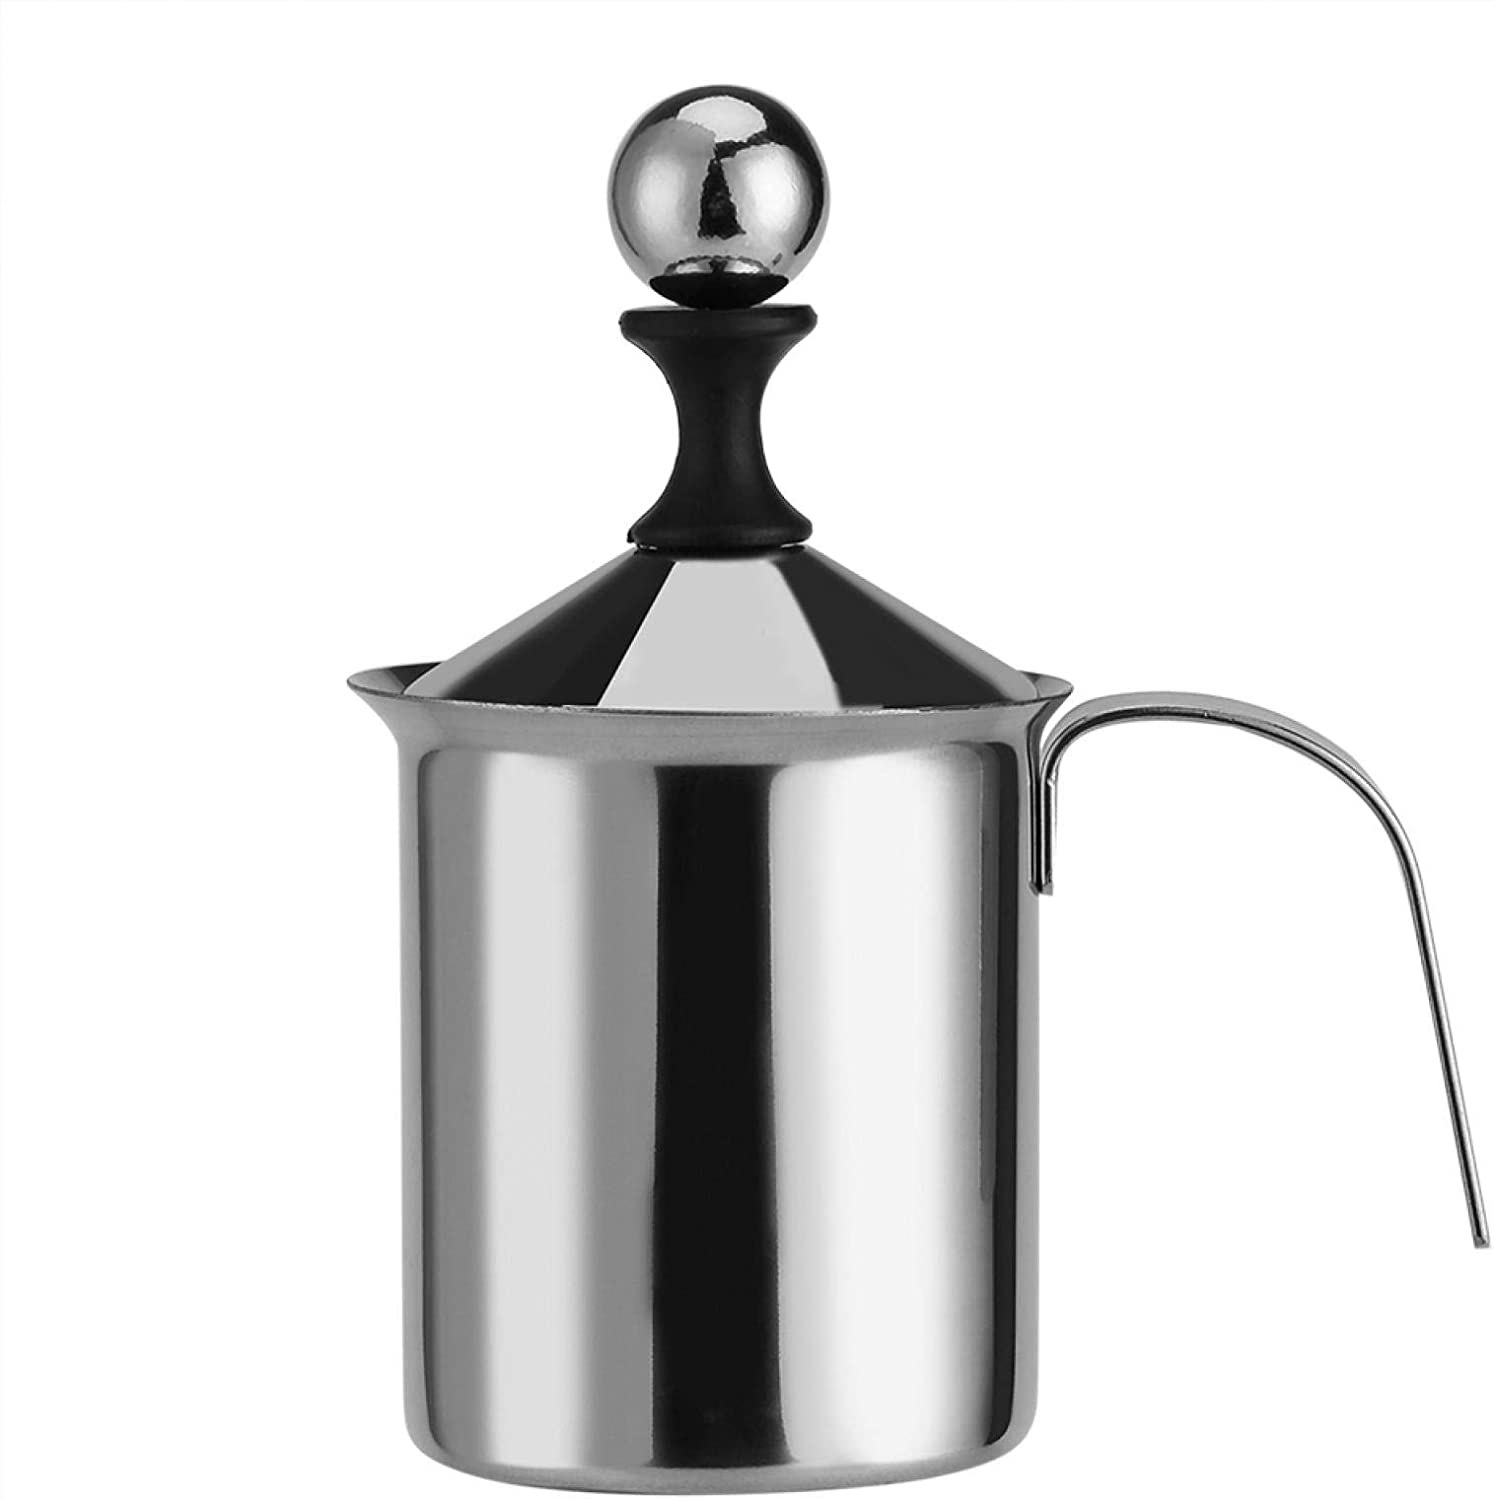 Shoplice Hand Pump Milk Today's only Frother - 800ML Popular product Ma 400ML Steel Stainless